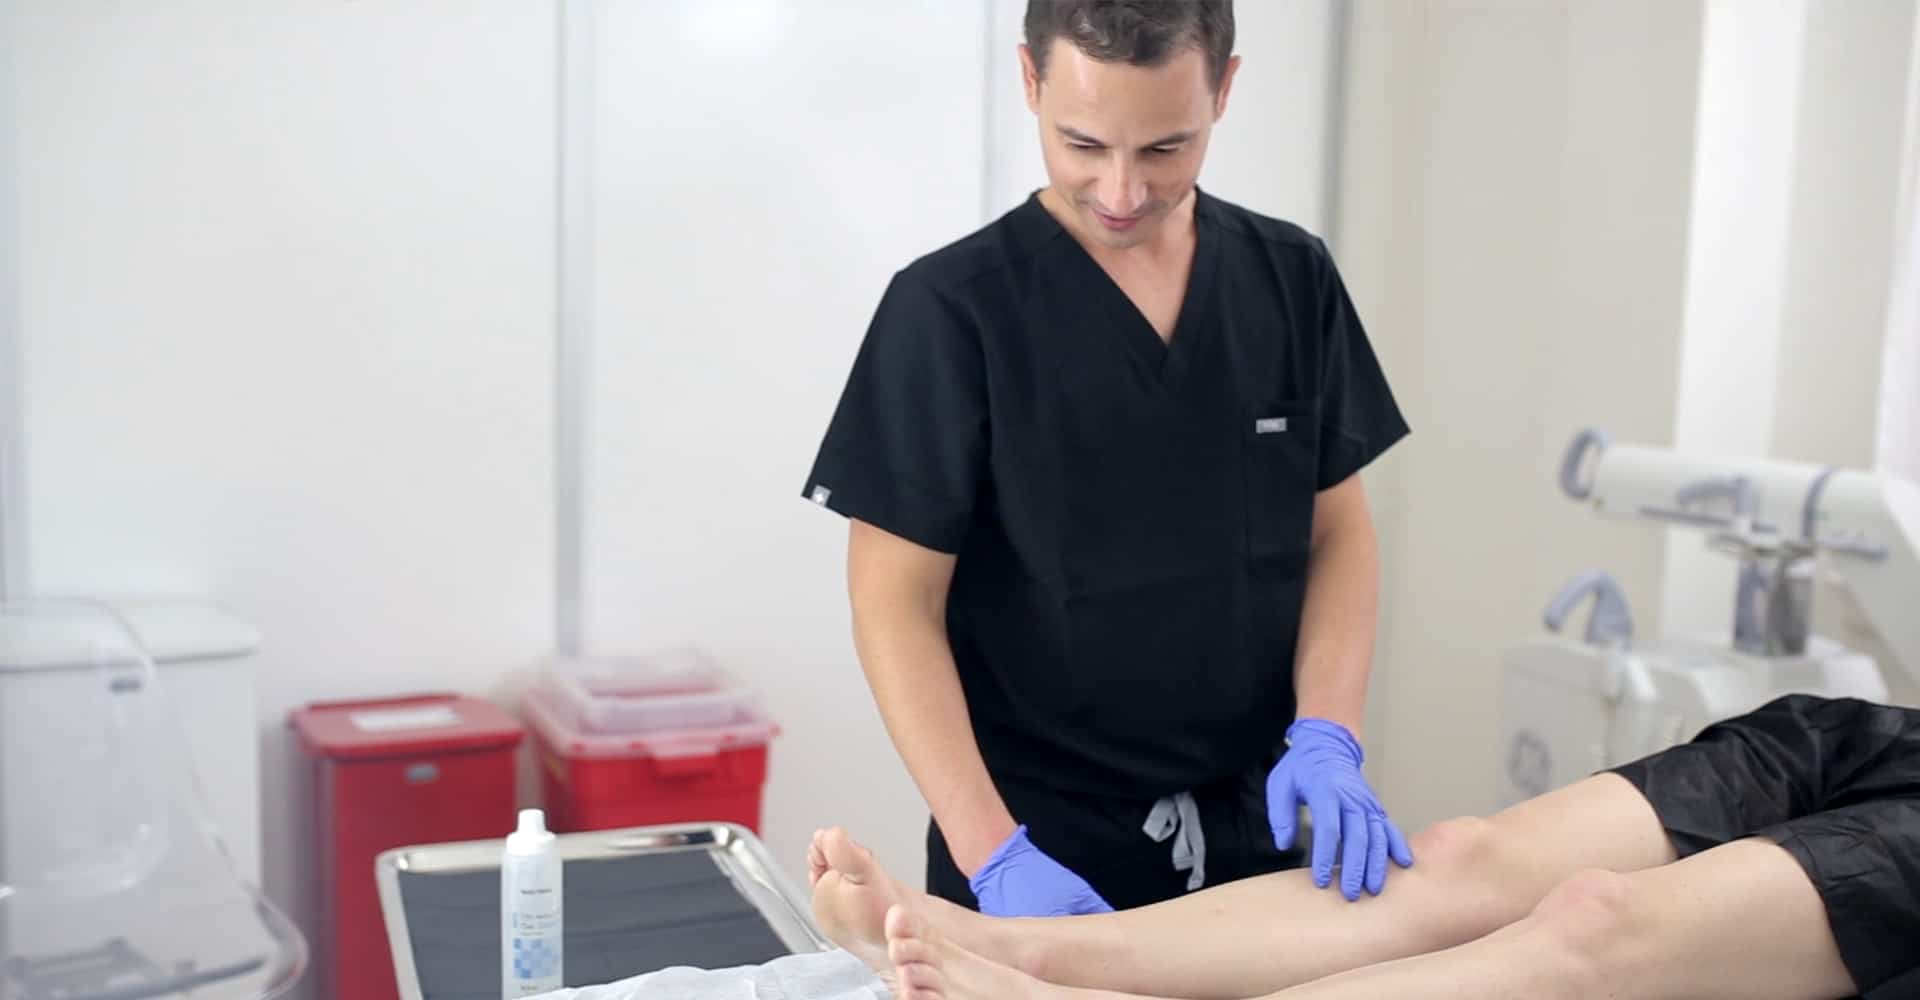 Are you looking for the best vein center in Clifton, NJ? In this article, we describe the qualities to consider when looking for the best vein center and vein doctors in NJ.